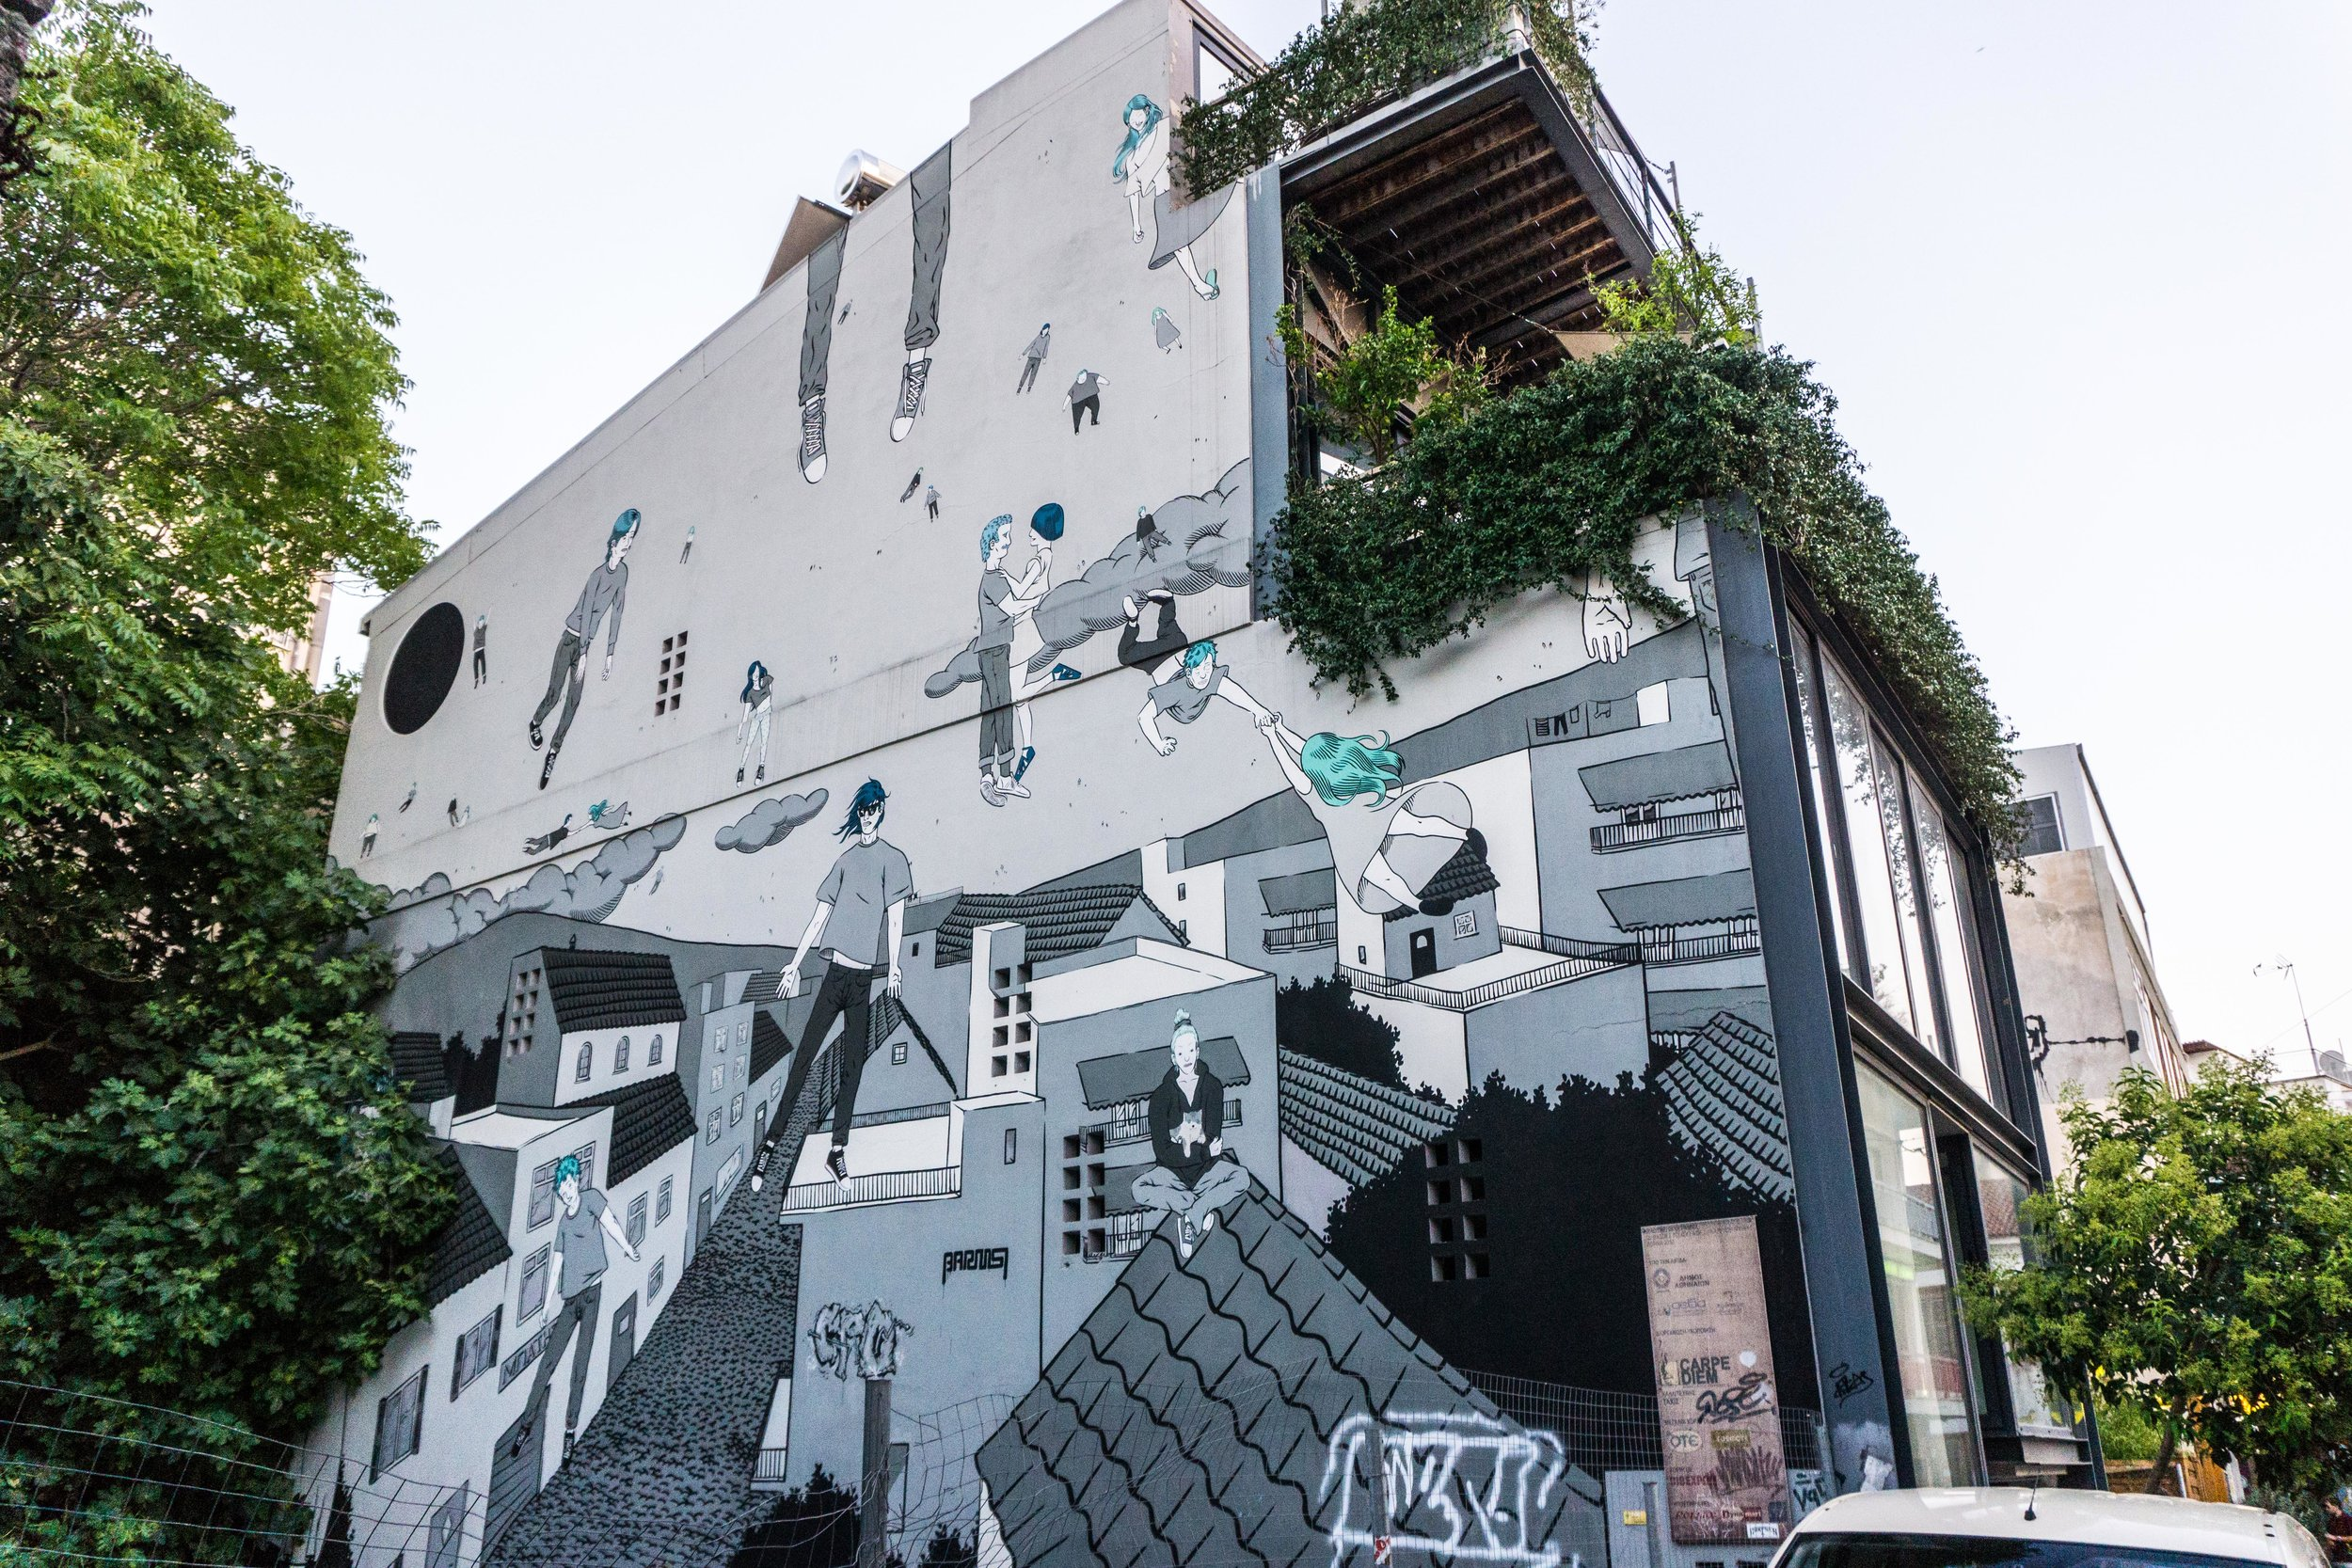 Psirri Street Art (17 of 17).jpg